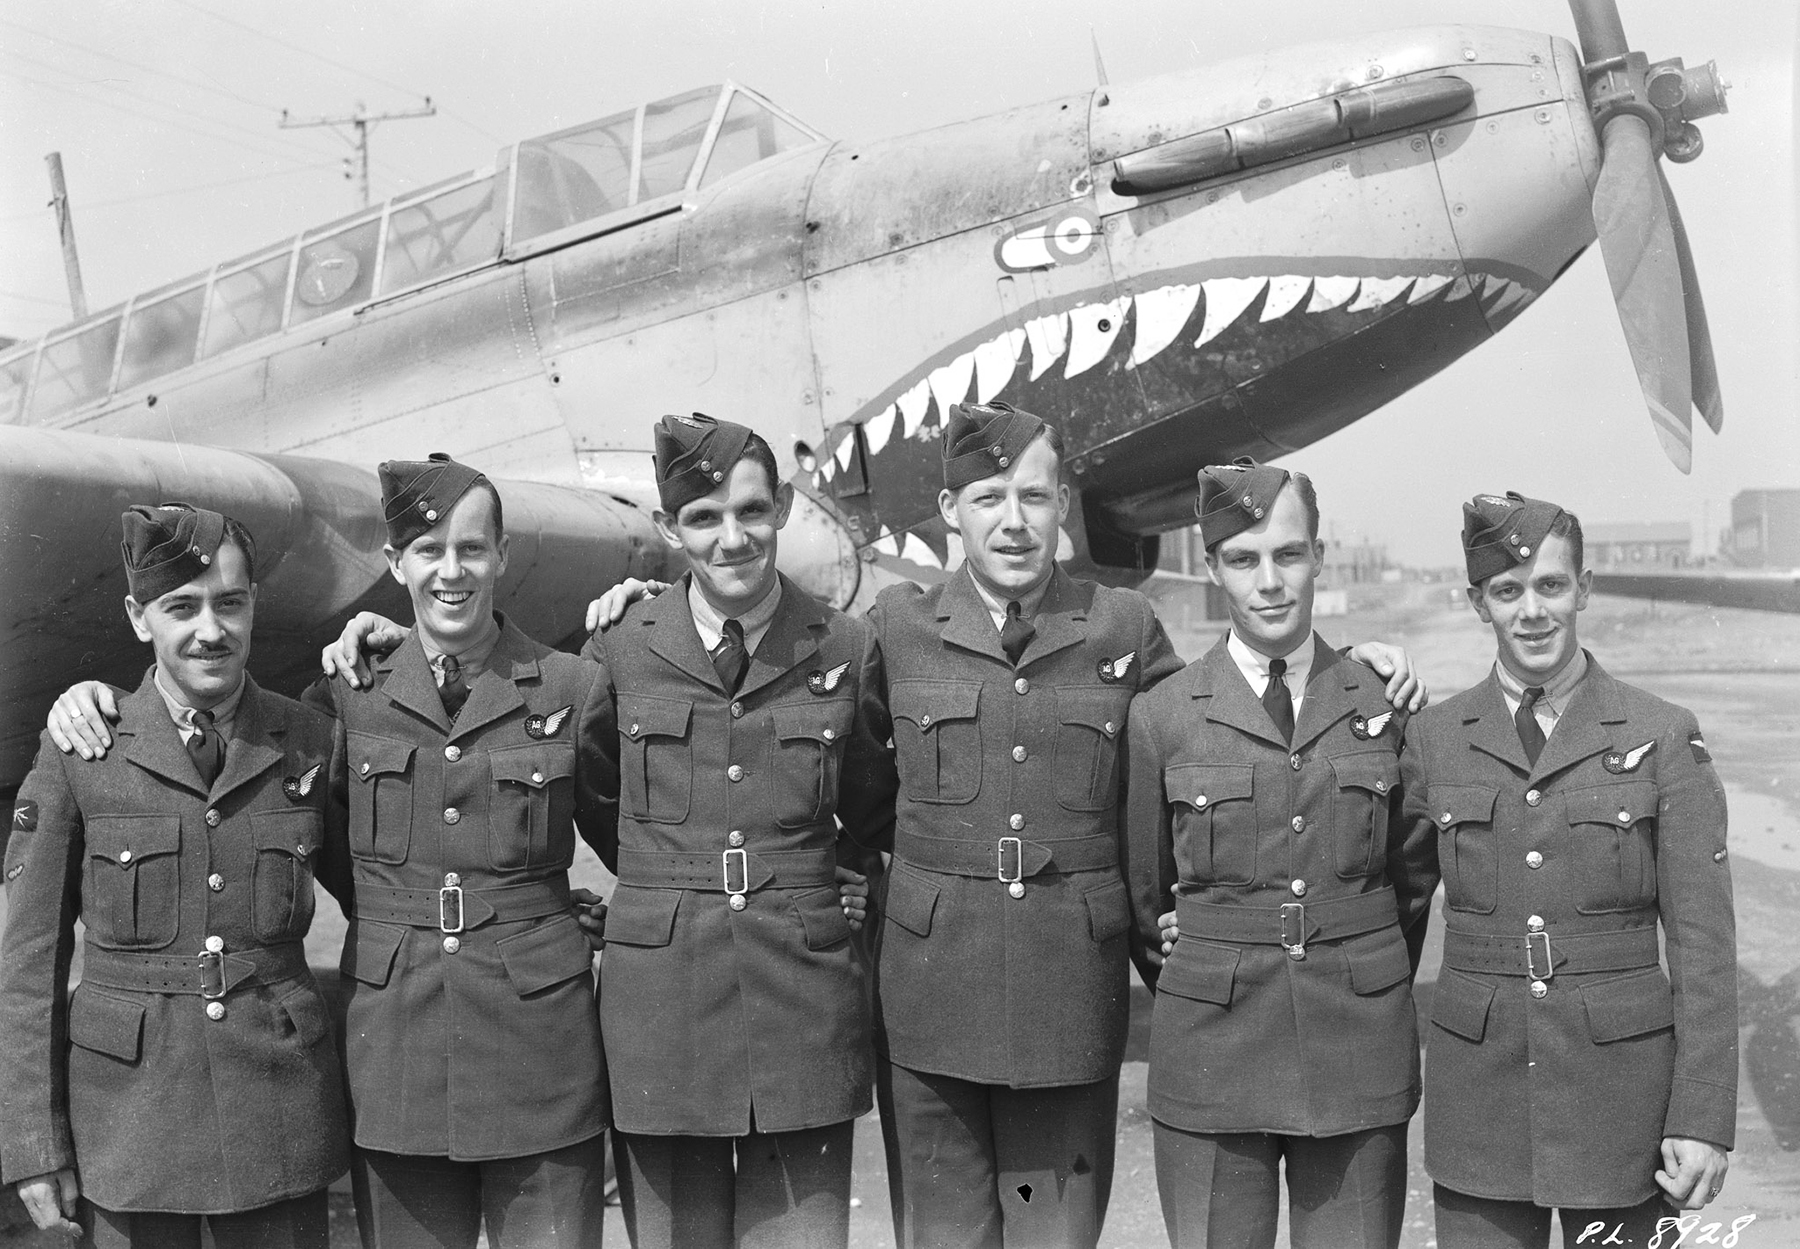 Standing beside a menacing Fairey Battle trainer aircraft, Leading Aircraftman J.L.H. Gougeon (left), Leading Aircraftman A.C. Reay, Leading Aircraftman J.C.E.M. Brosseau,; Leading Aircraftman F.G. Bourque, Leading Aircraftman D.W. Fraser, and Leading Aircraftman J.E.J.P. St. Michel, all from Québec, are part of the May 20, 1942, graduating class of Course #30, 1&2, at No. 9 Bombing and Gunnery School on RCAF Station Mont-Joli, Québec. PHOTO: DND Archives, PL-8928